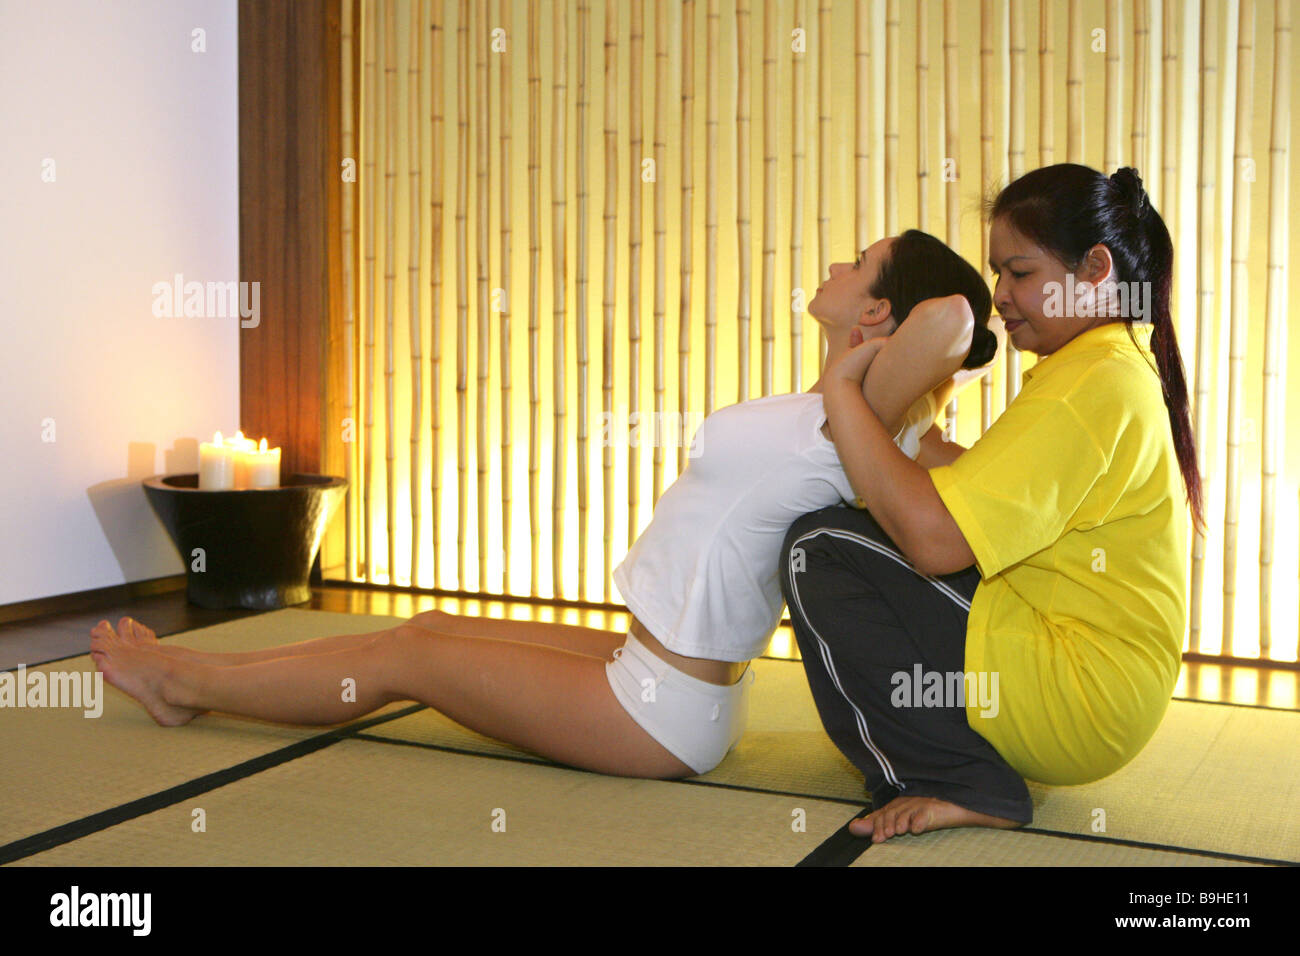 thai massage holbæk sex eskort